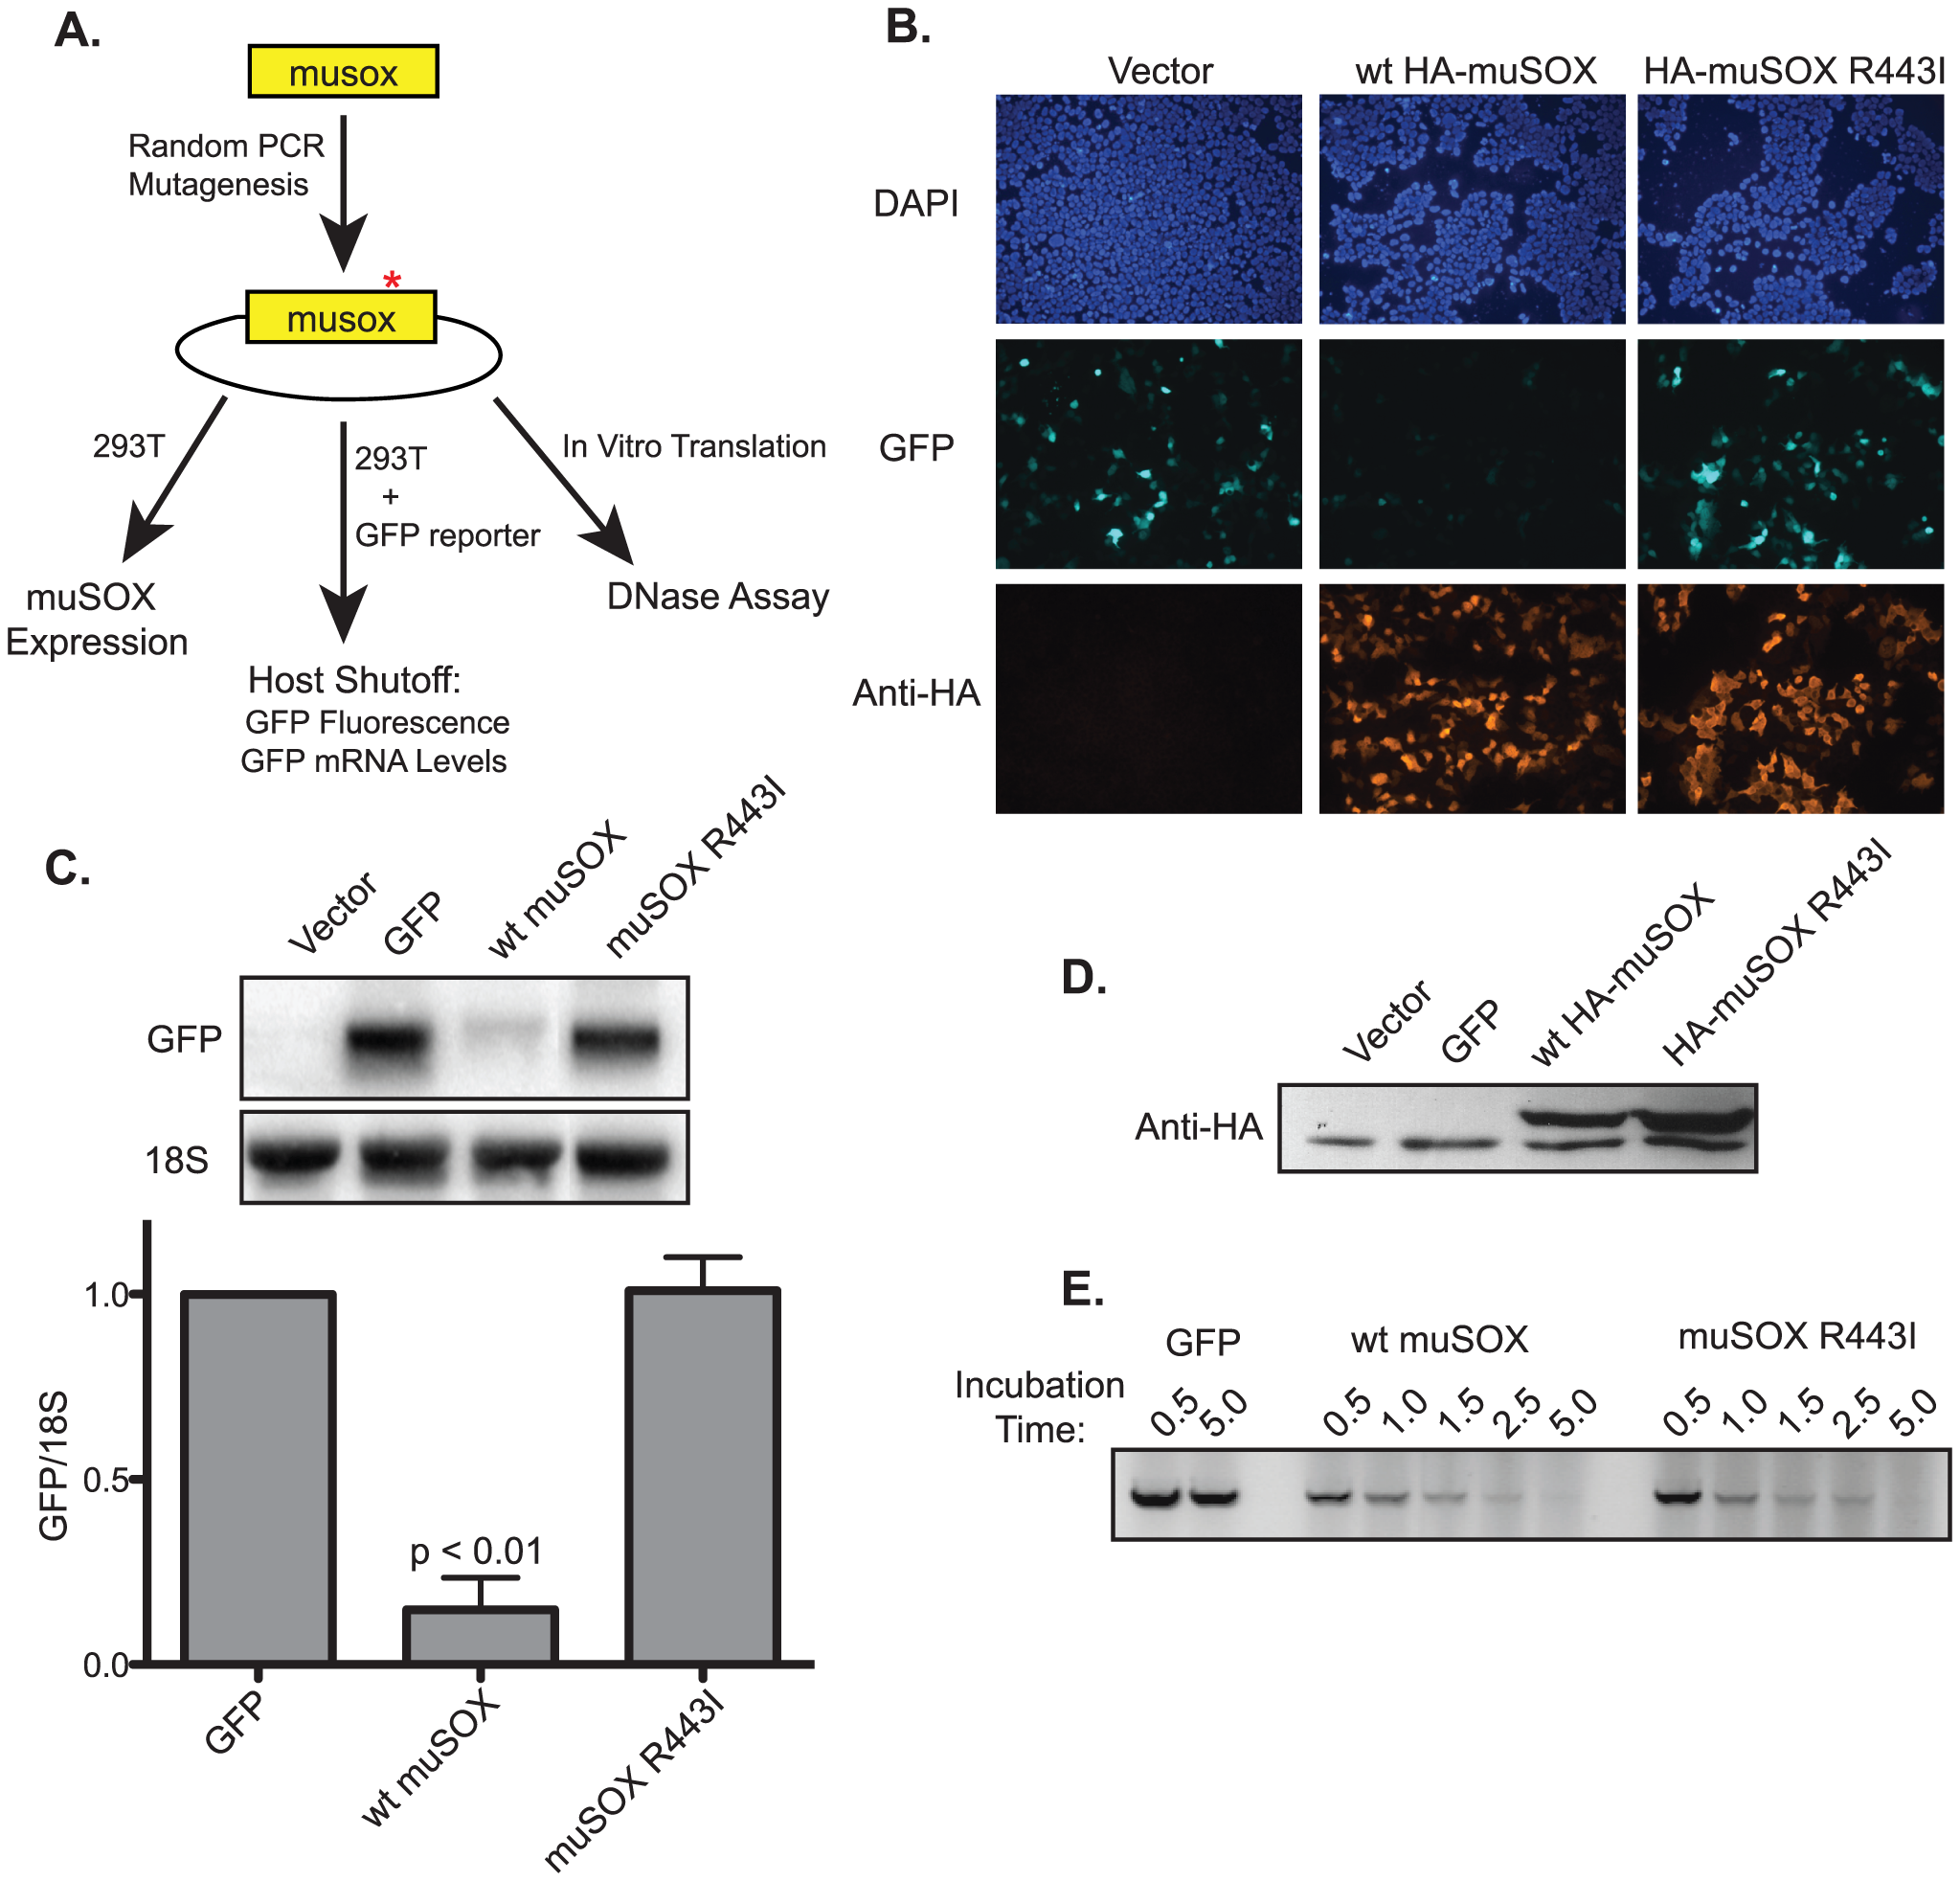 Isolation of the single-function muSOX mutant R443I.